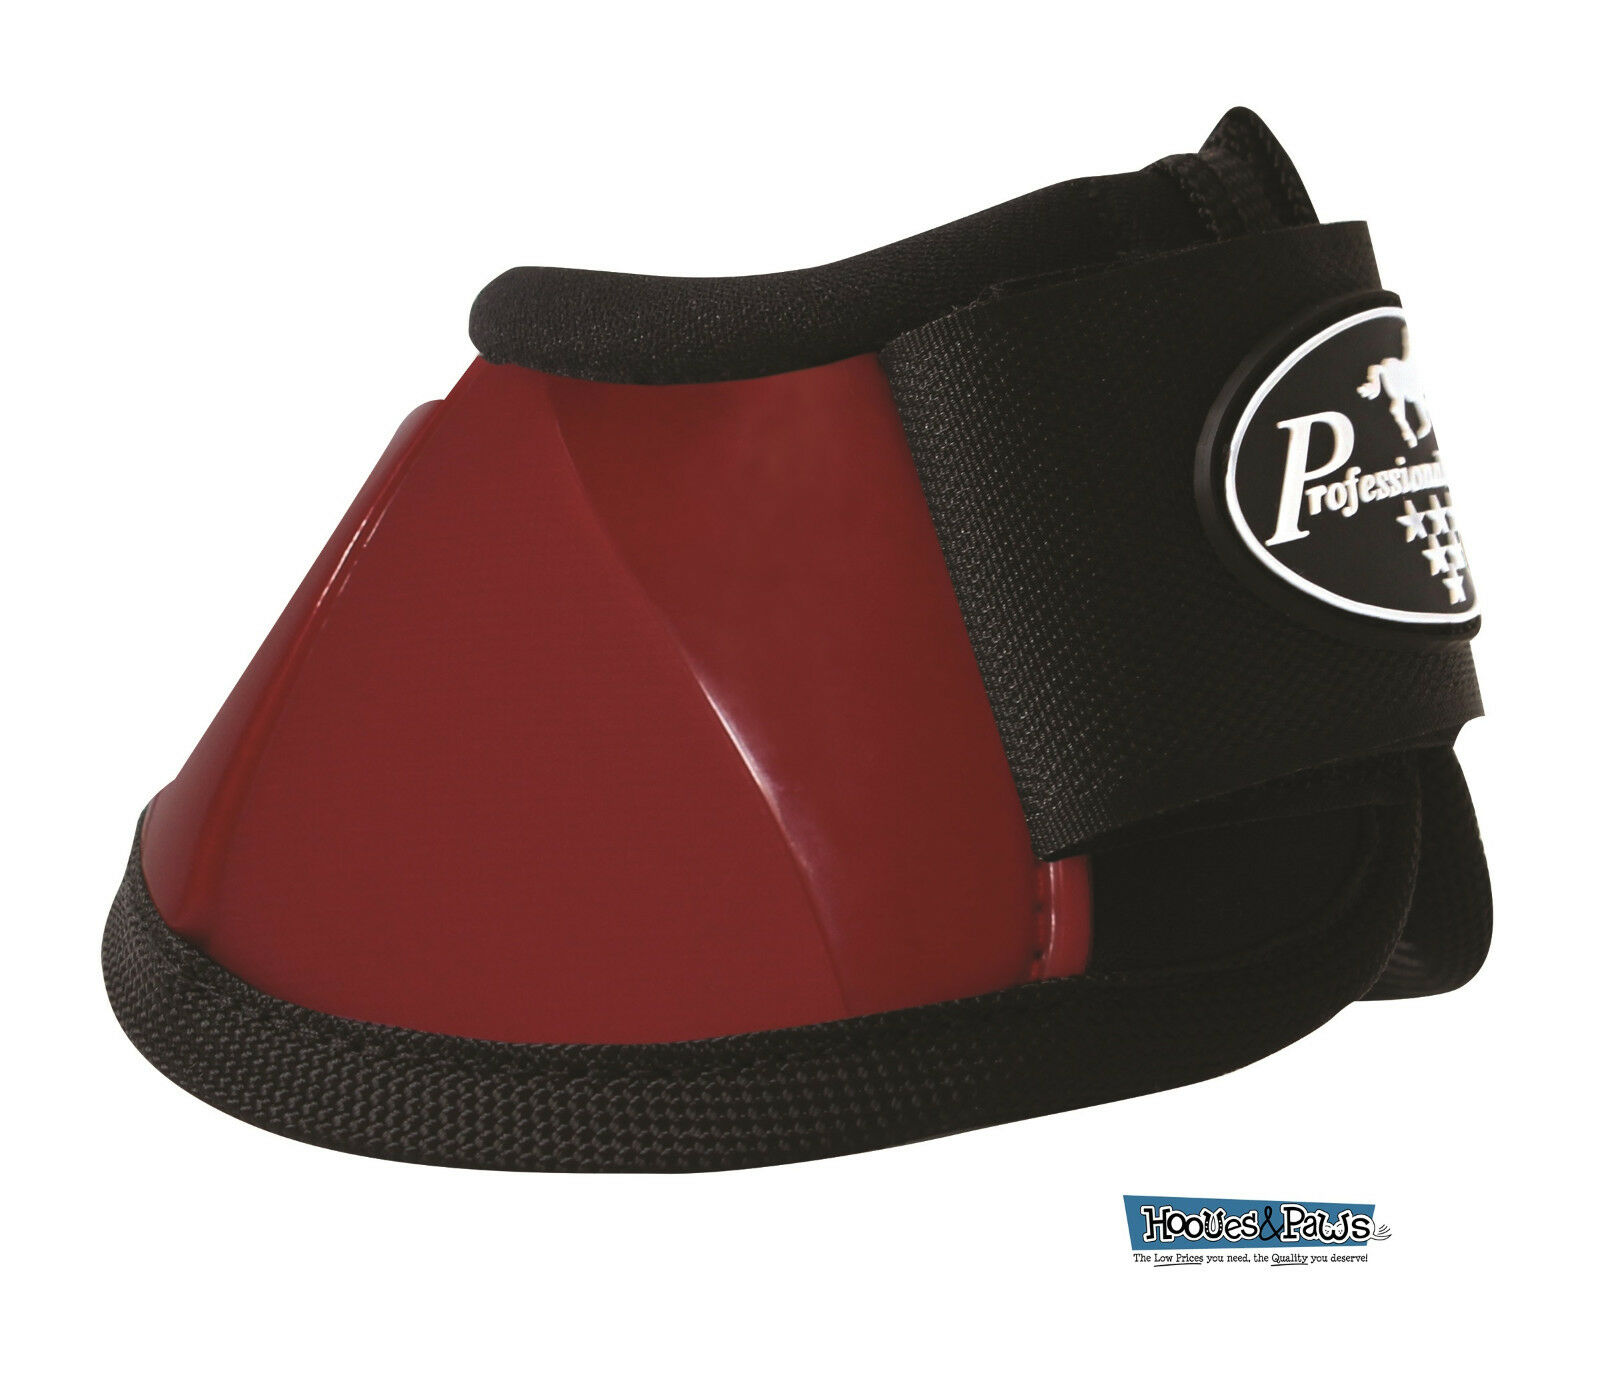 Professionals Choice Horse Spartan Overreach Ballistic Bell Boots Crimson Red